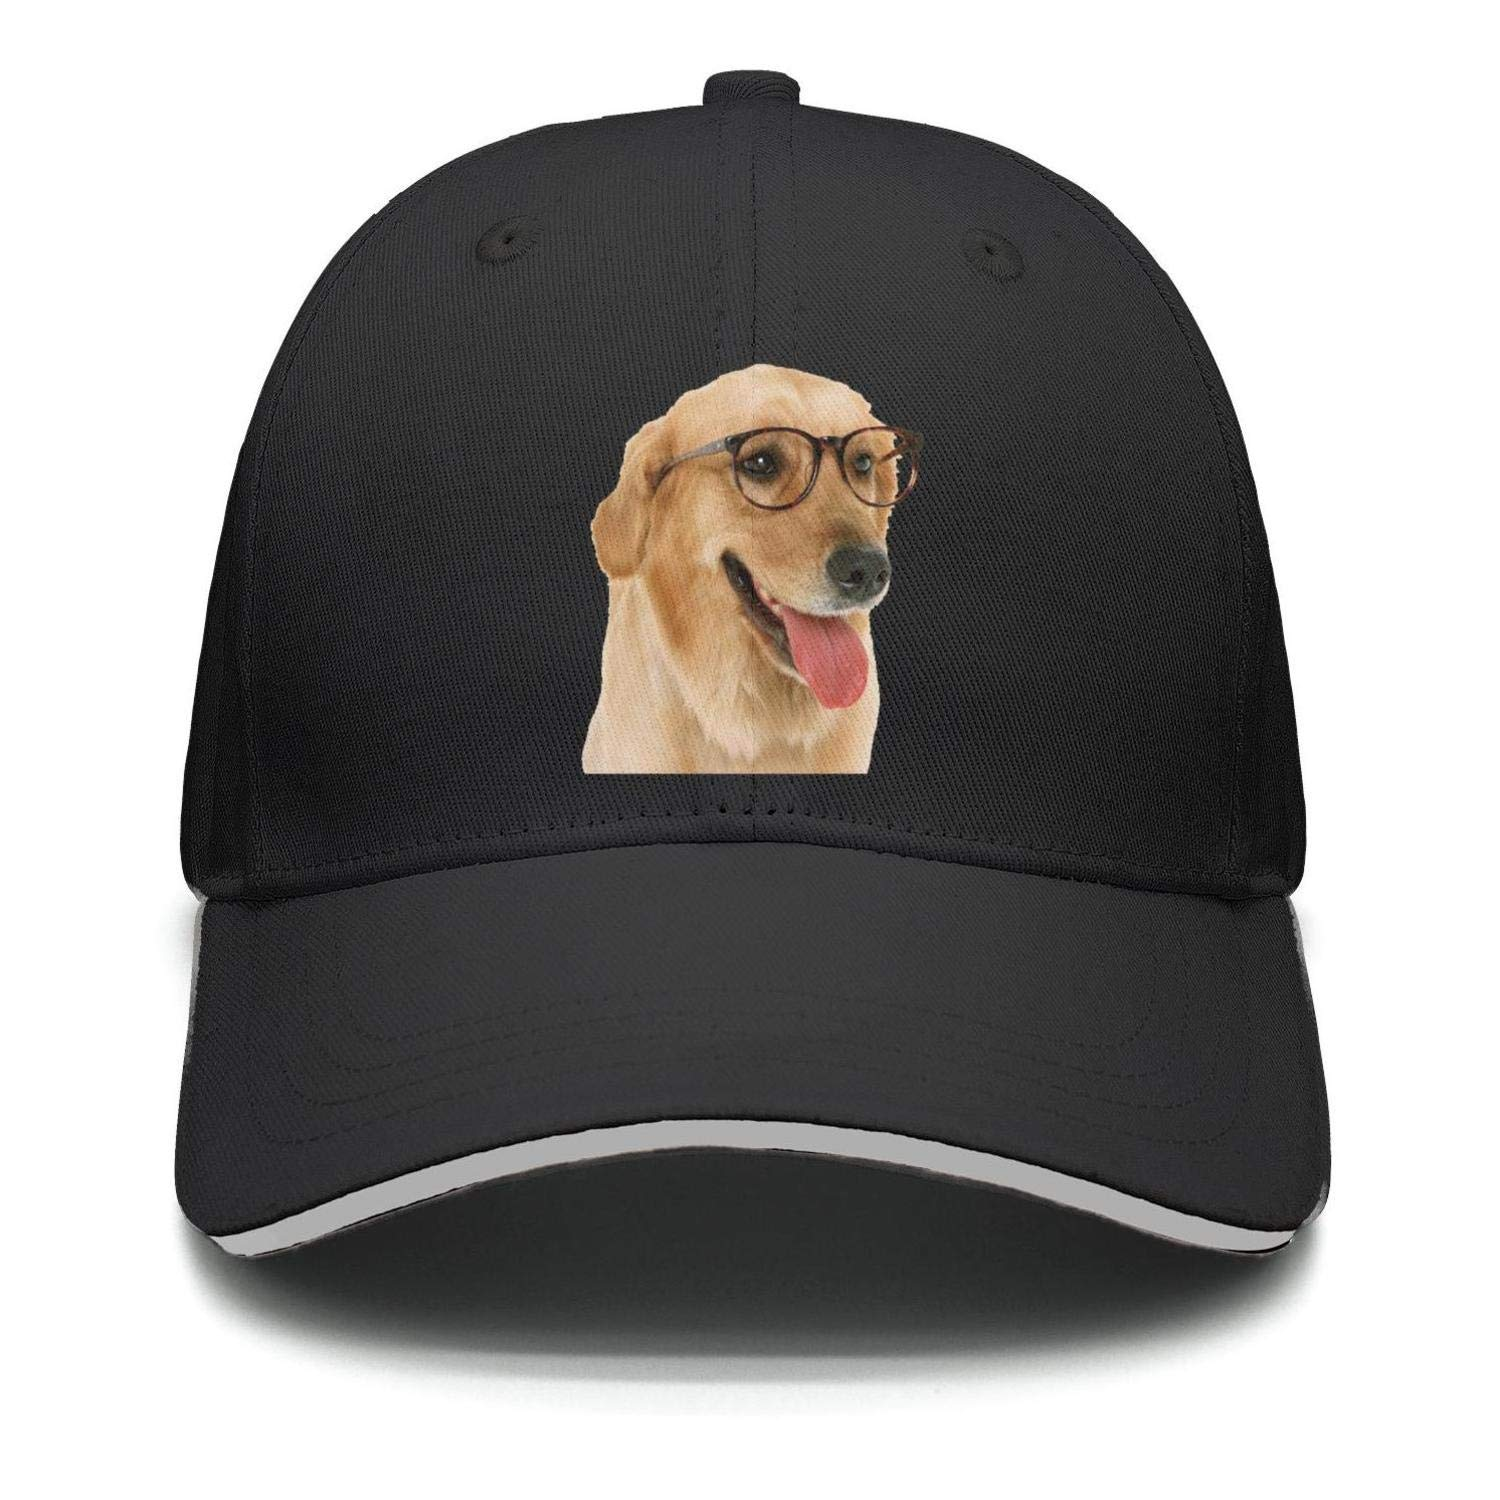 IOCZXTGH Unisex Puppy Dog Pattern Baseball HatsGolf Adjustable Mesh Hat Cap